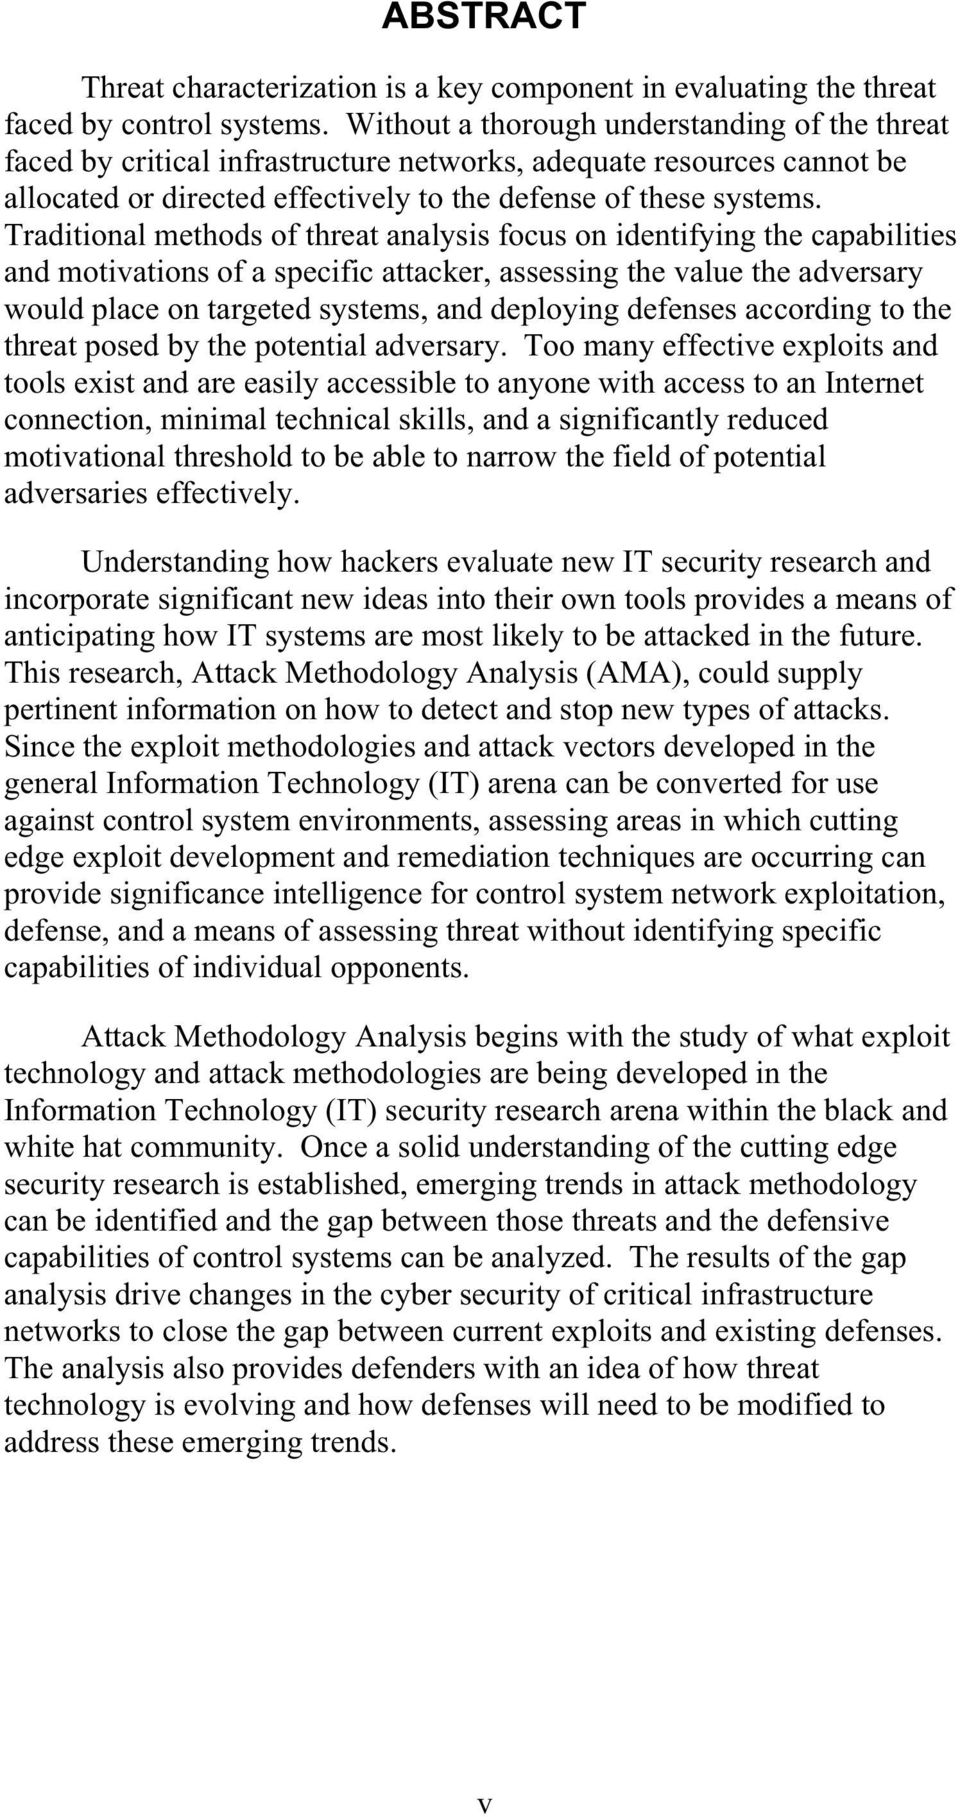 Traditional methods of threat analysis focus on identifying the capabilities and motivations of a specific attacker, assessing the value the adversary would place on targeted systems, and deploying